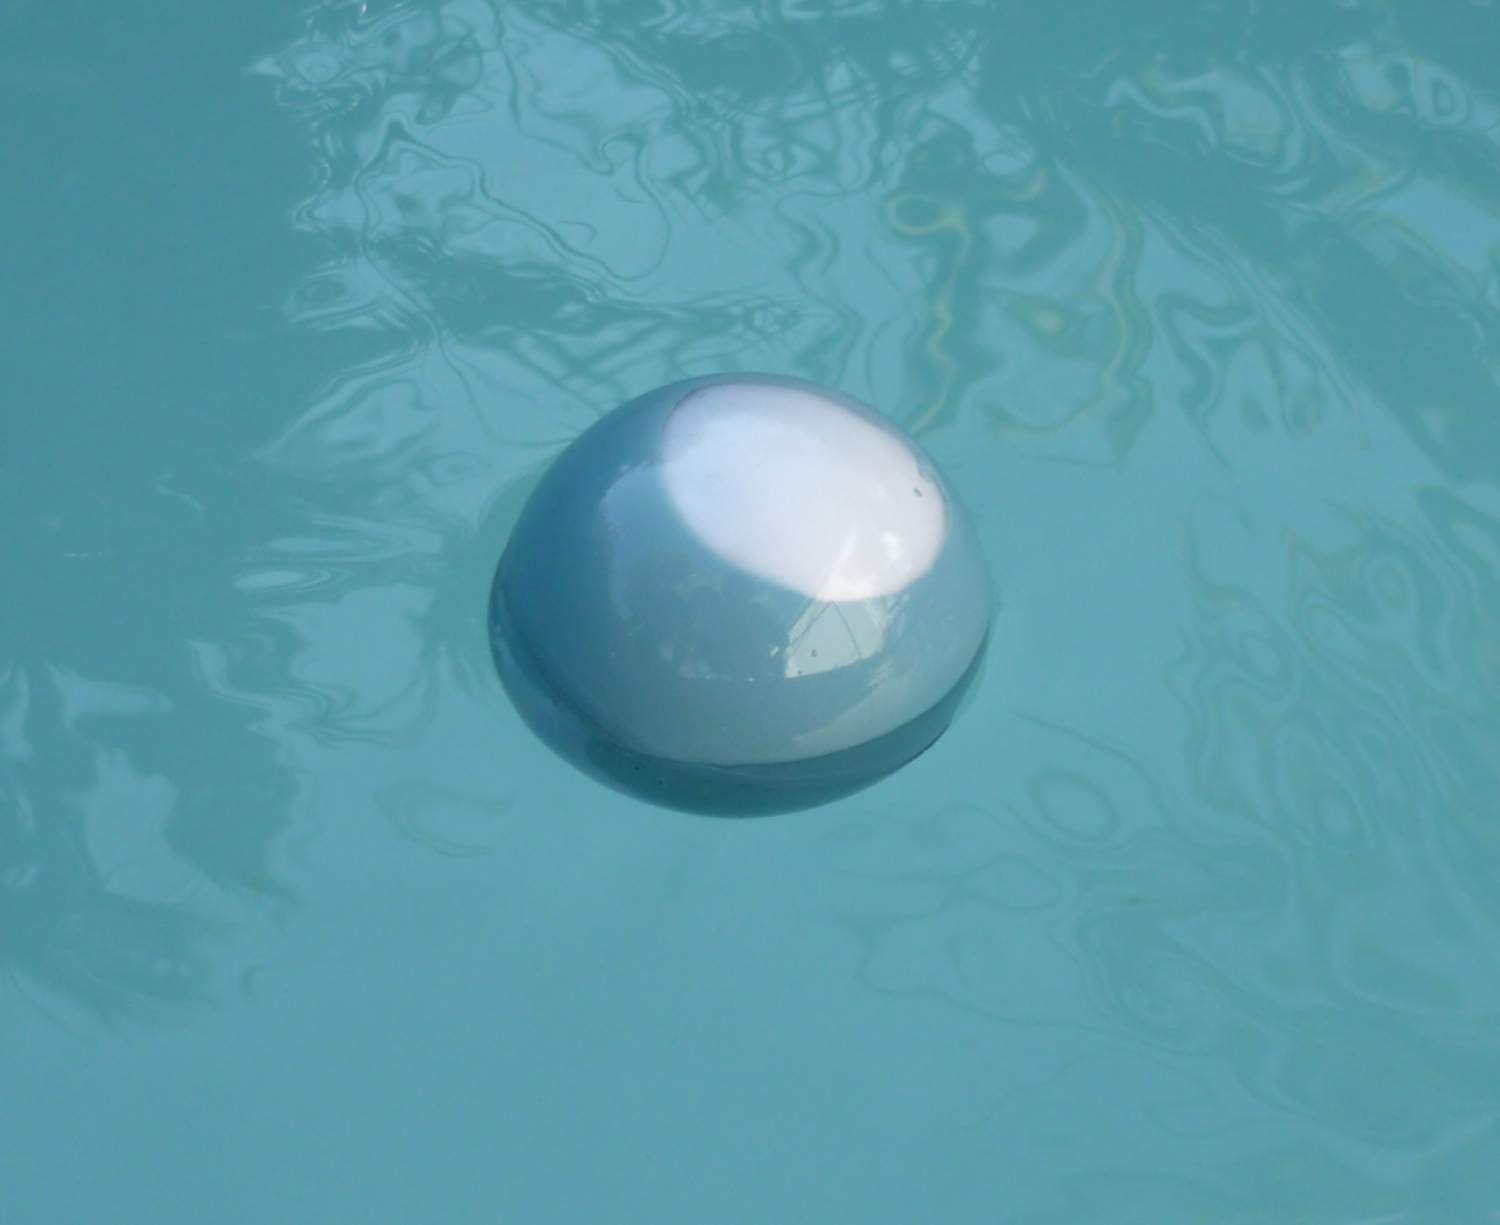 Diy celsiusball un thermom tre flottant low cost semageek for Thermometre piscine